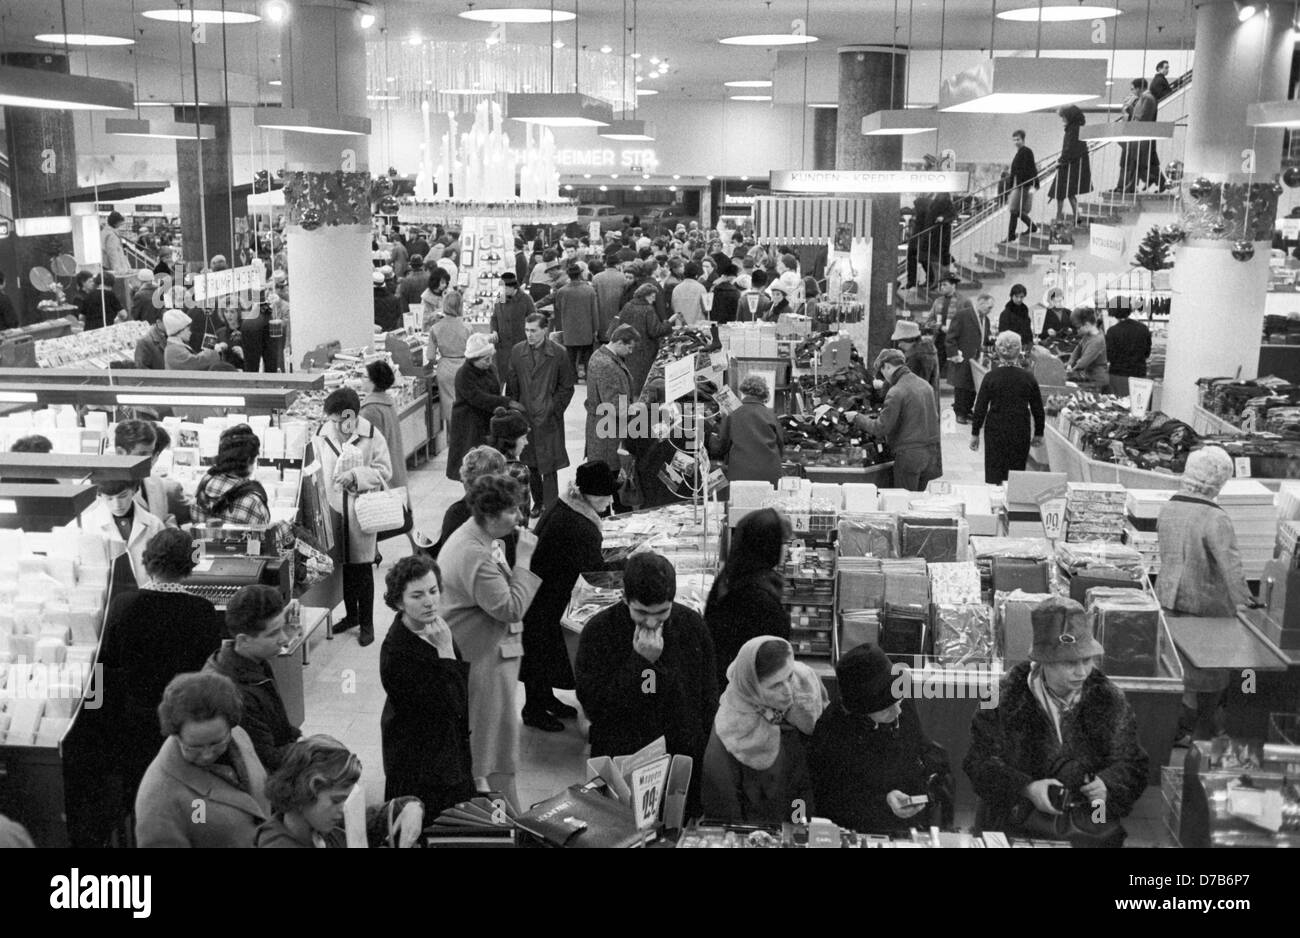 View into a shopping mall in Frankfurt on the 3rd of December in 1963. Stock Photo